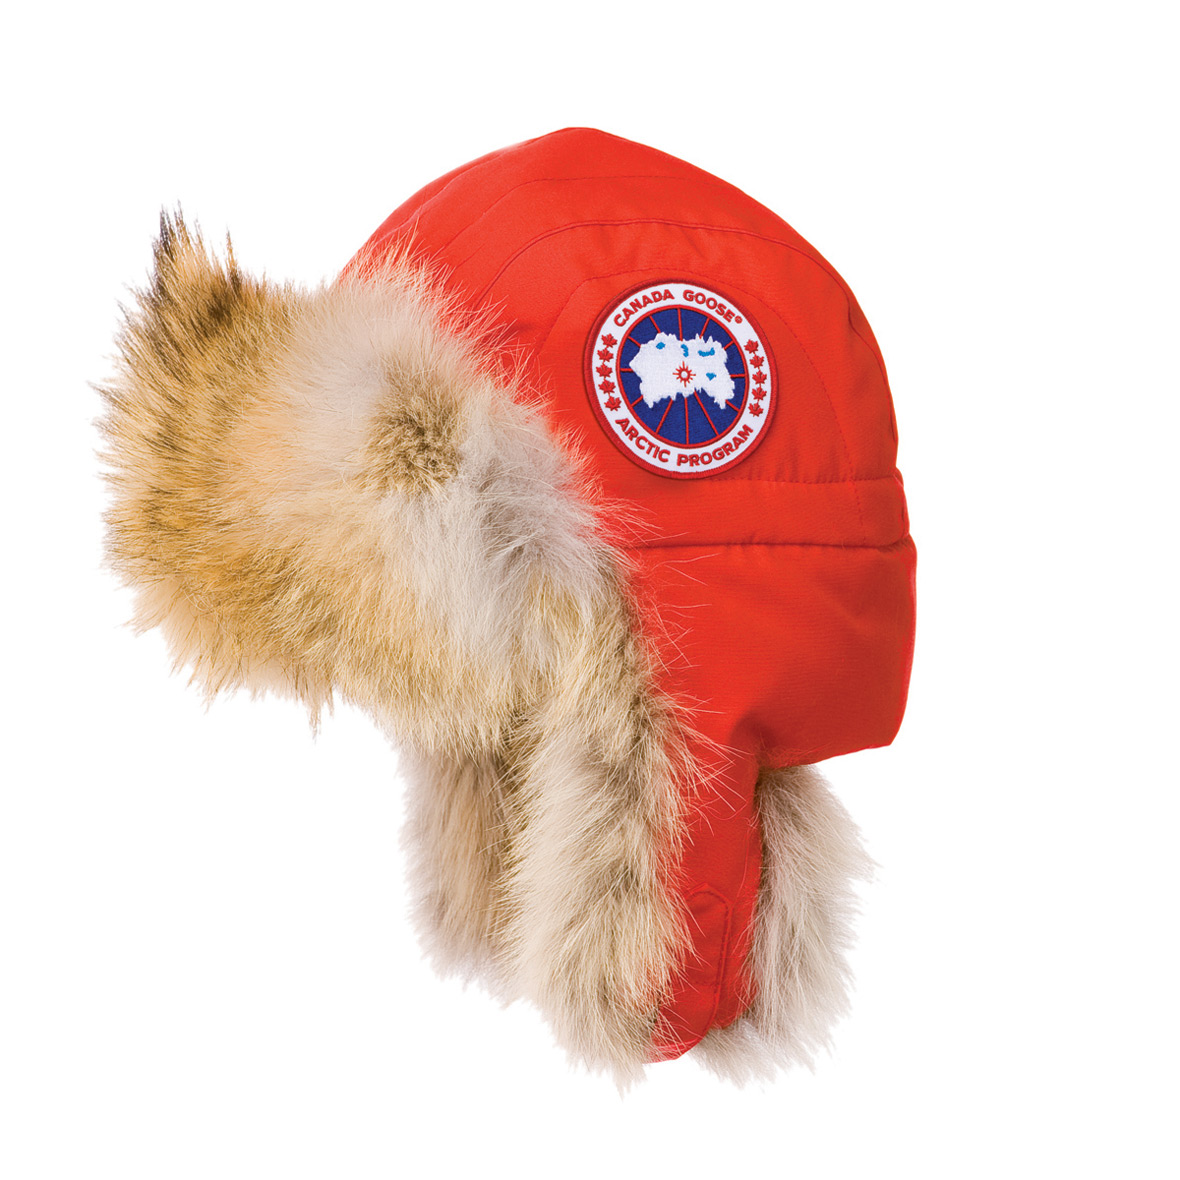 Canada Goose Unisex Aviator Hat RED For Men